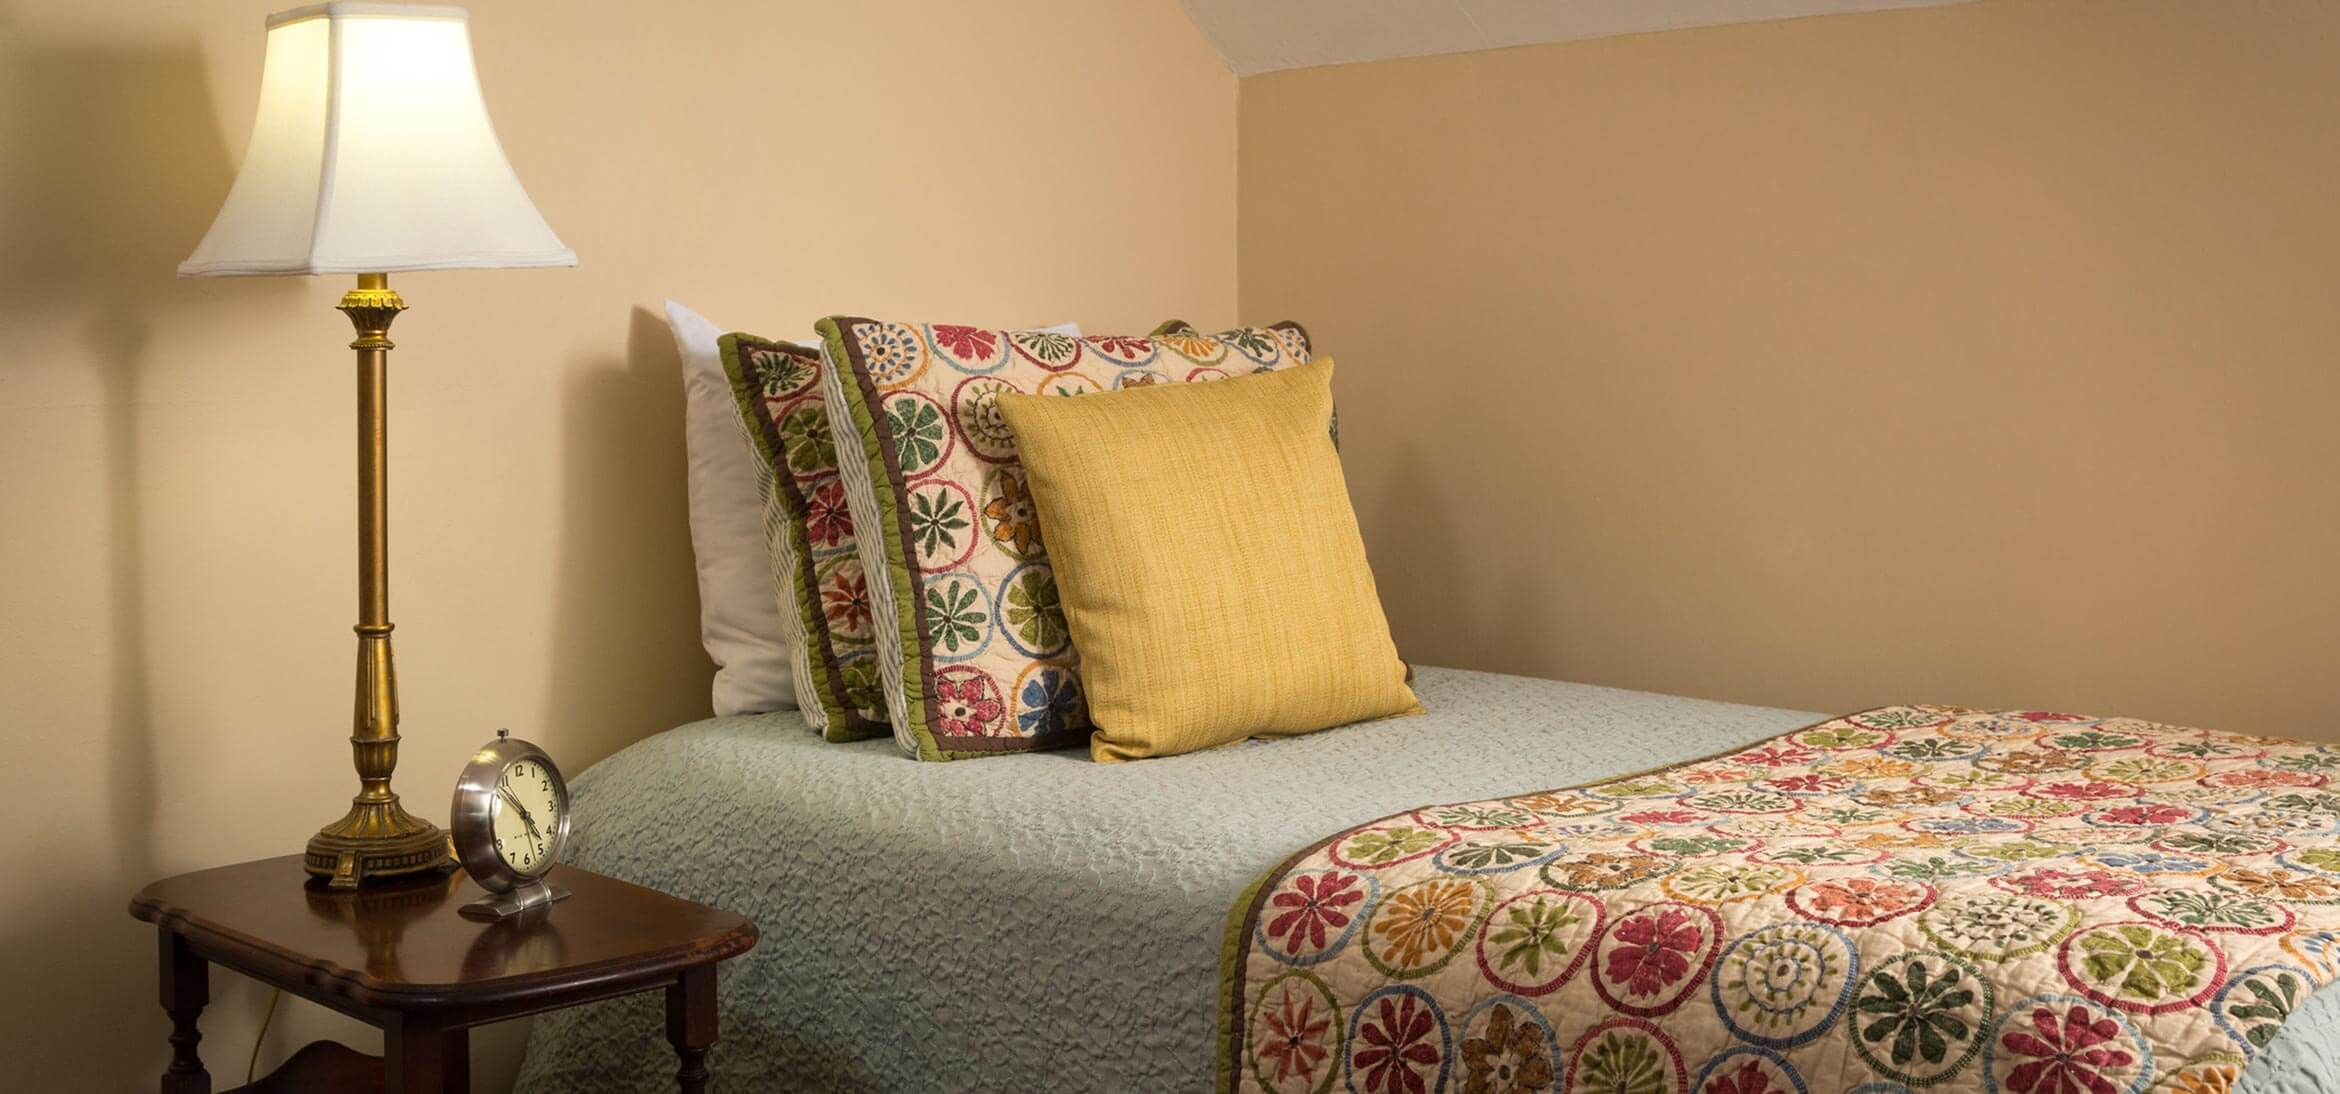 Tuttle Room daybed